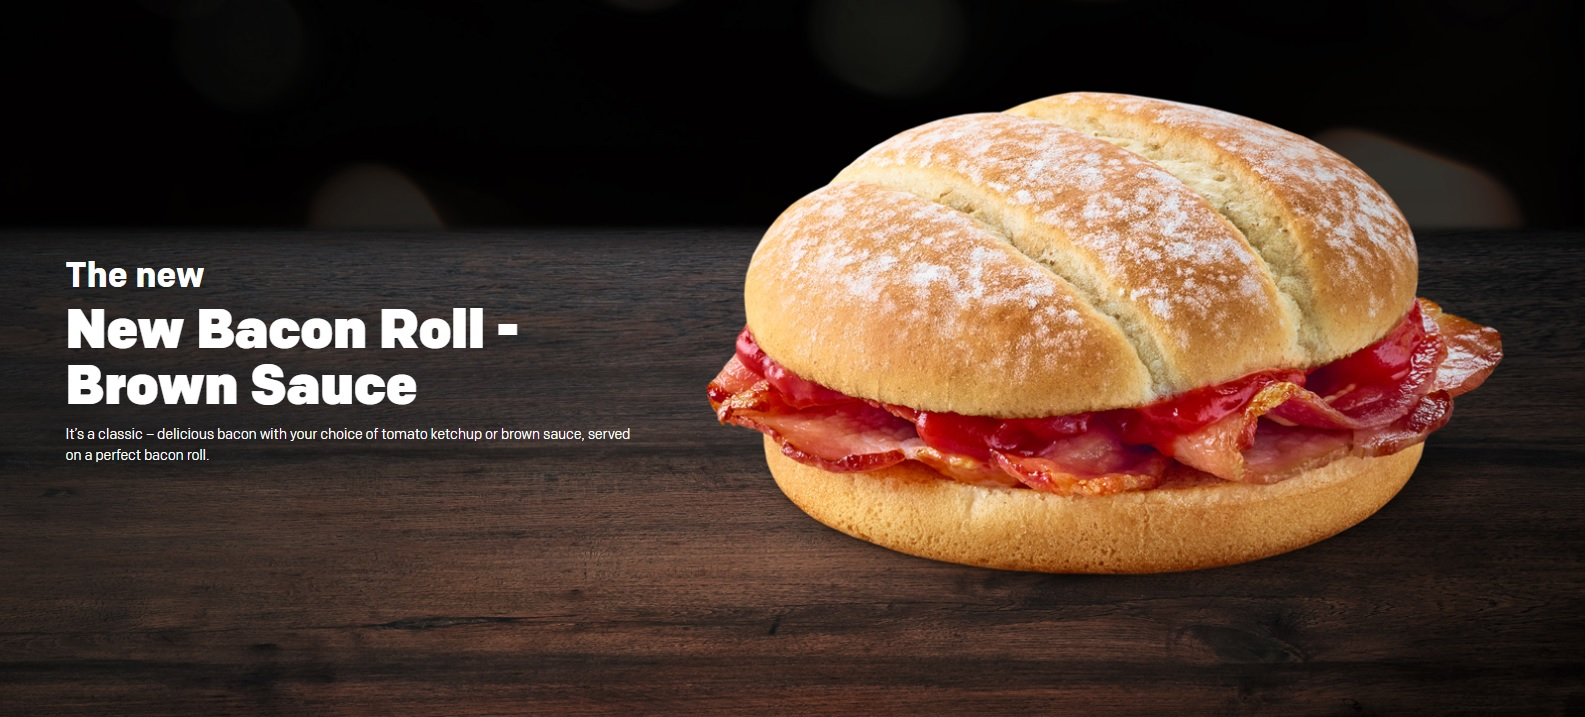 McDonald's New Bacon Roll